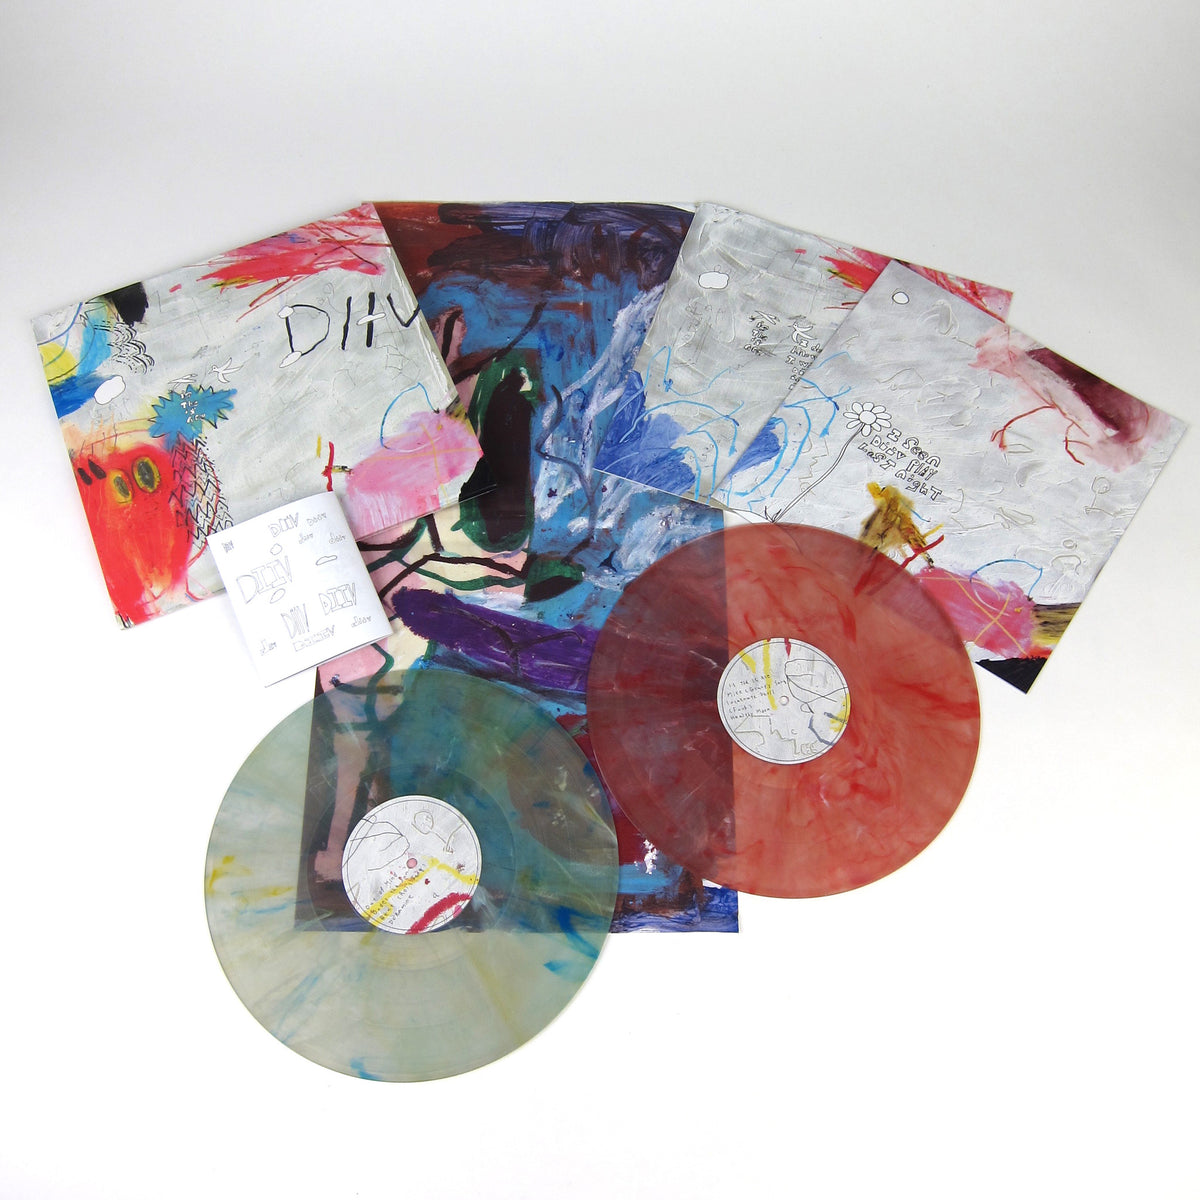 DIIV: Is The Is Are (Colored Vinyl) Vinyl 2LP - Special Edition